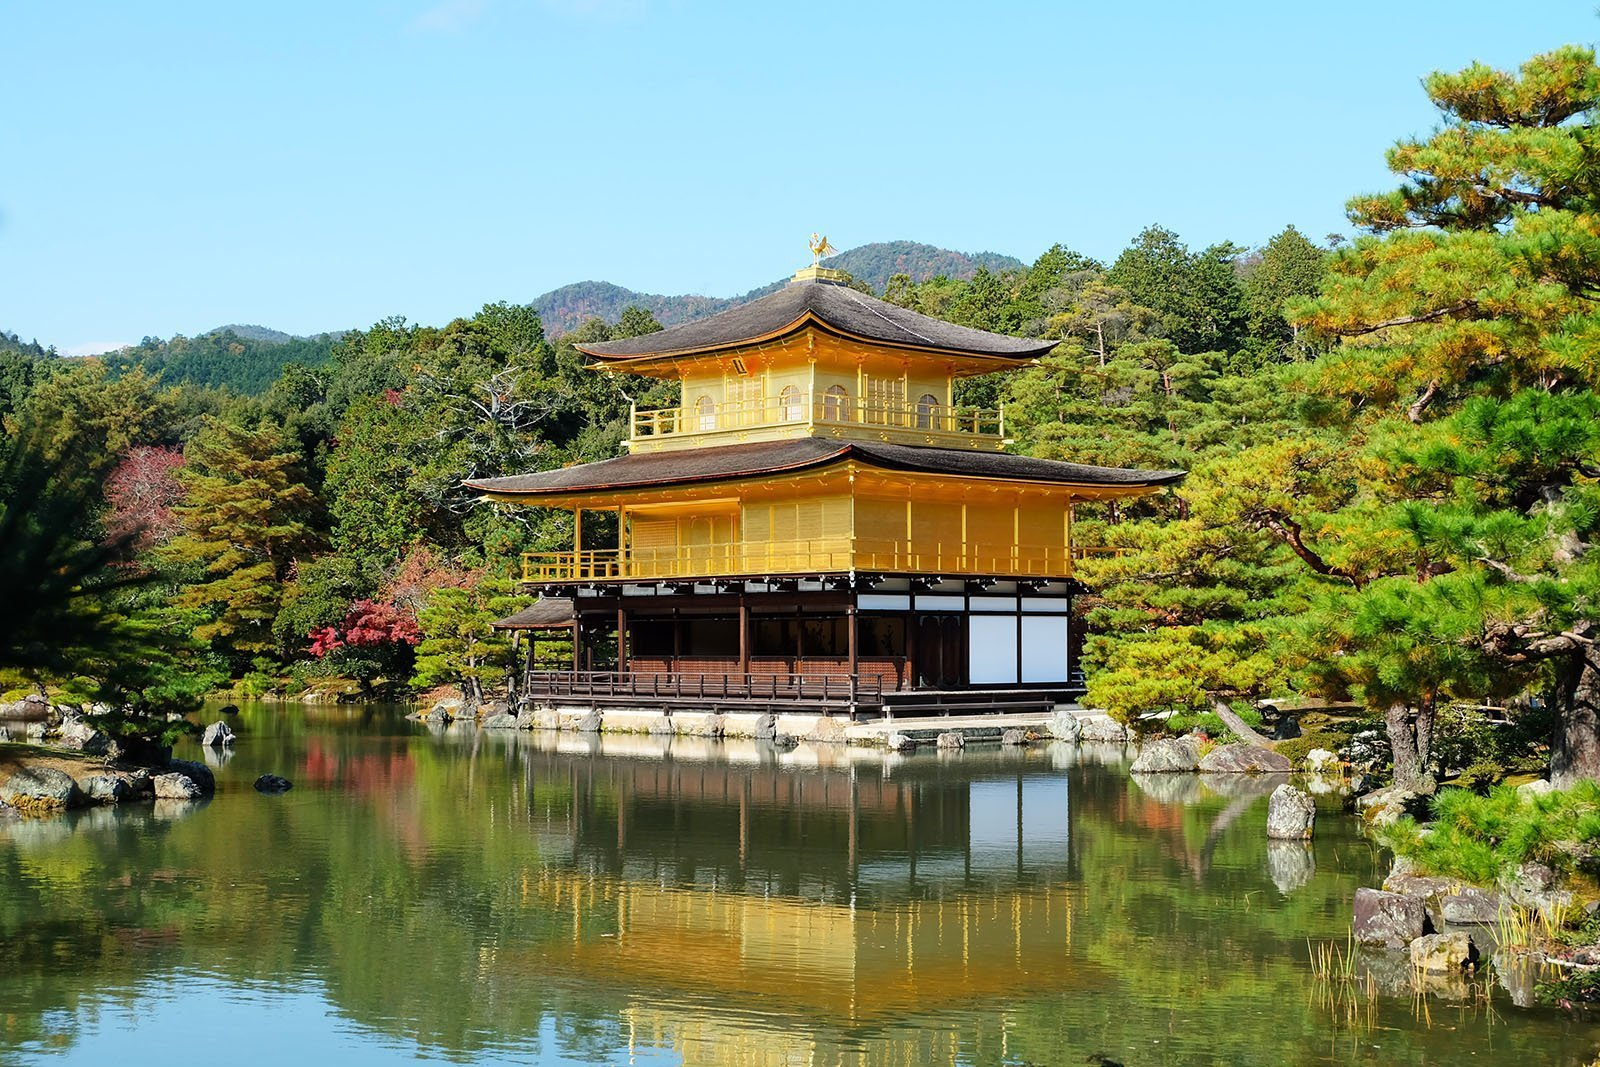 Top 7 Things to Do in Kyoto, Japan